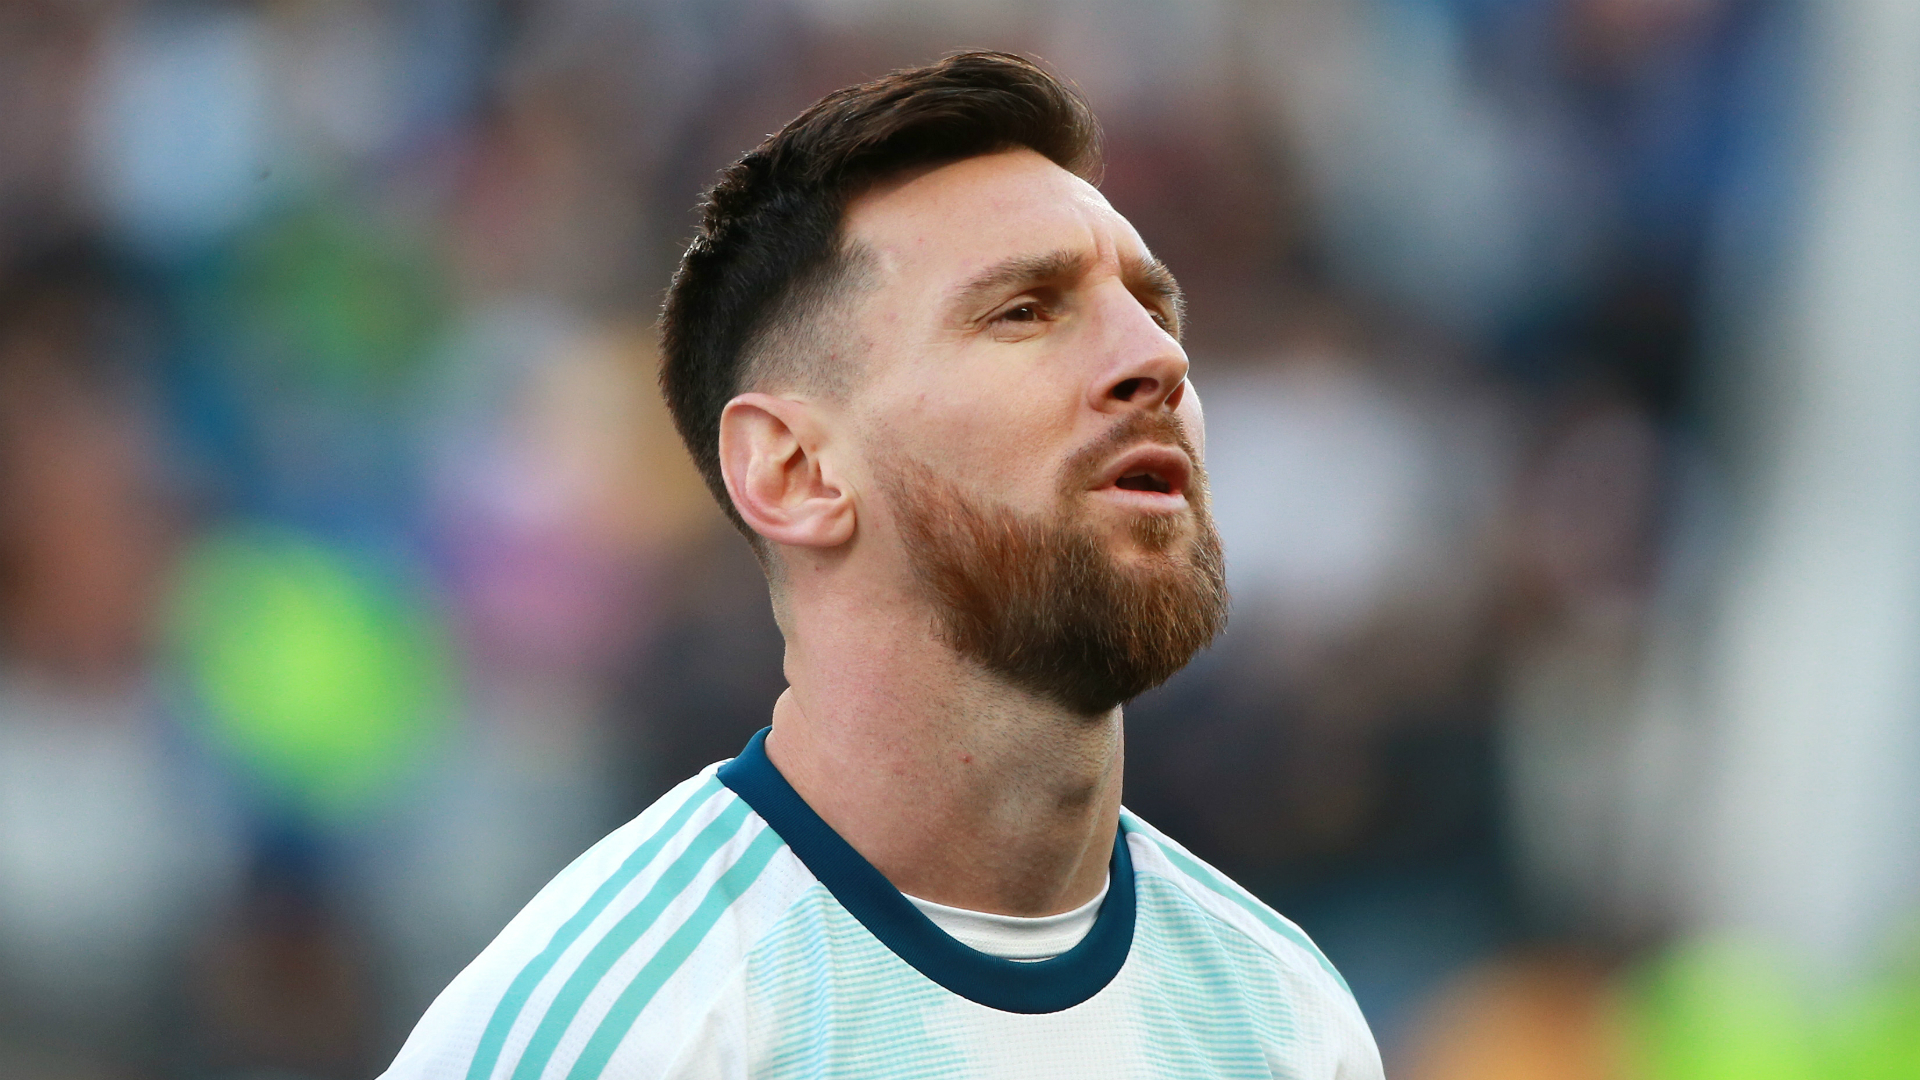 Messi: It's always good to beat Brazil